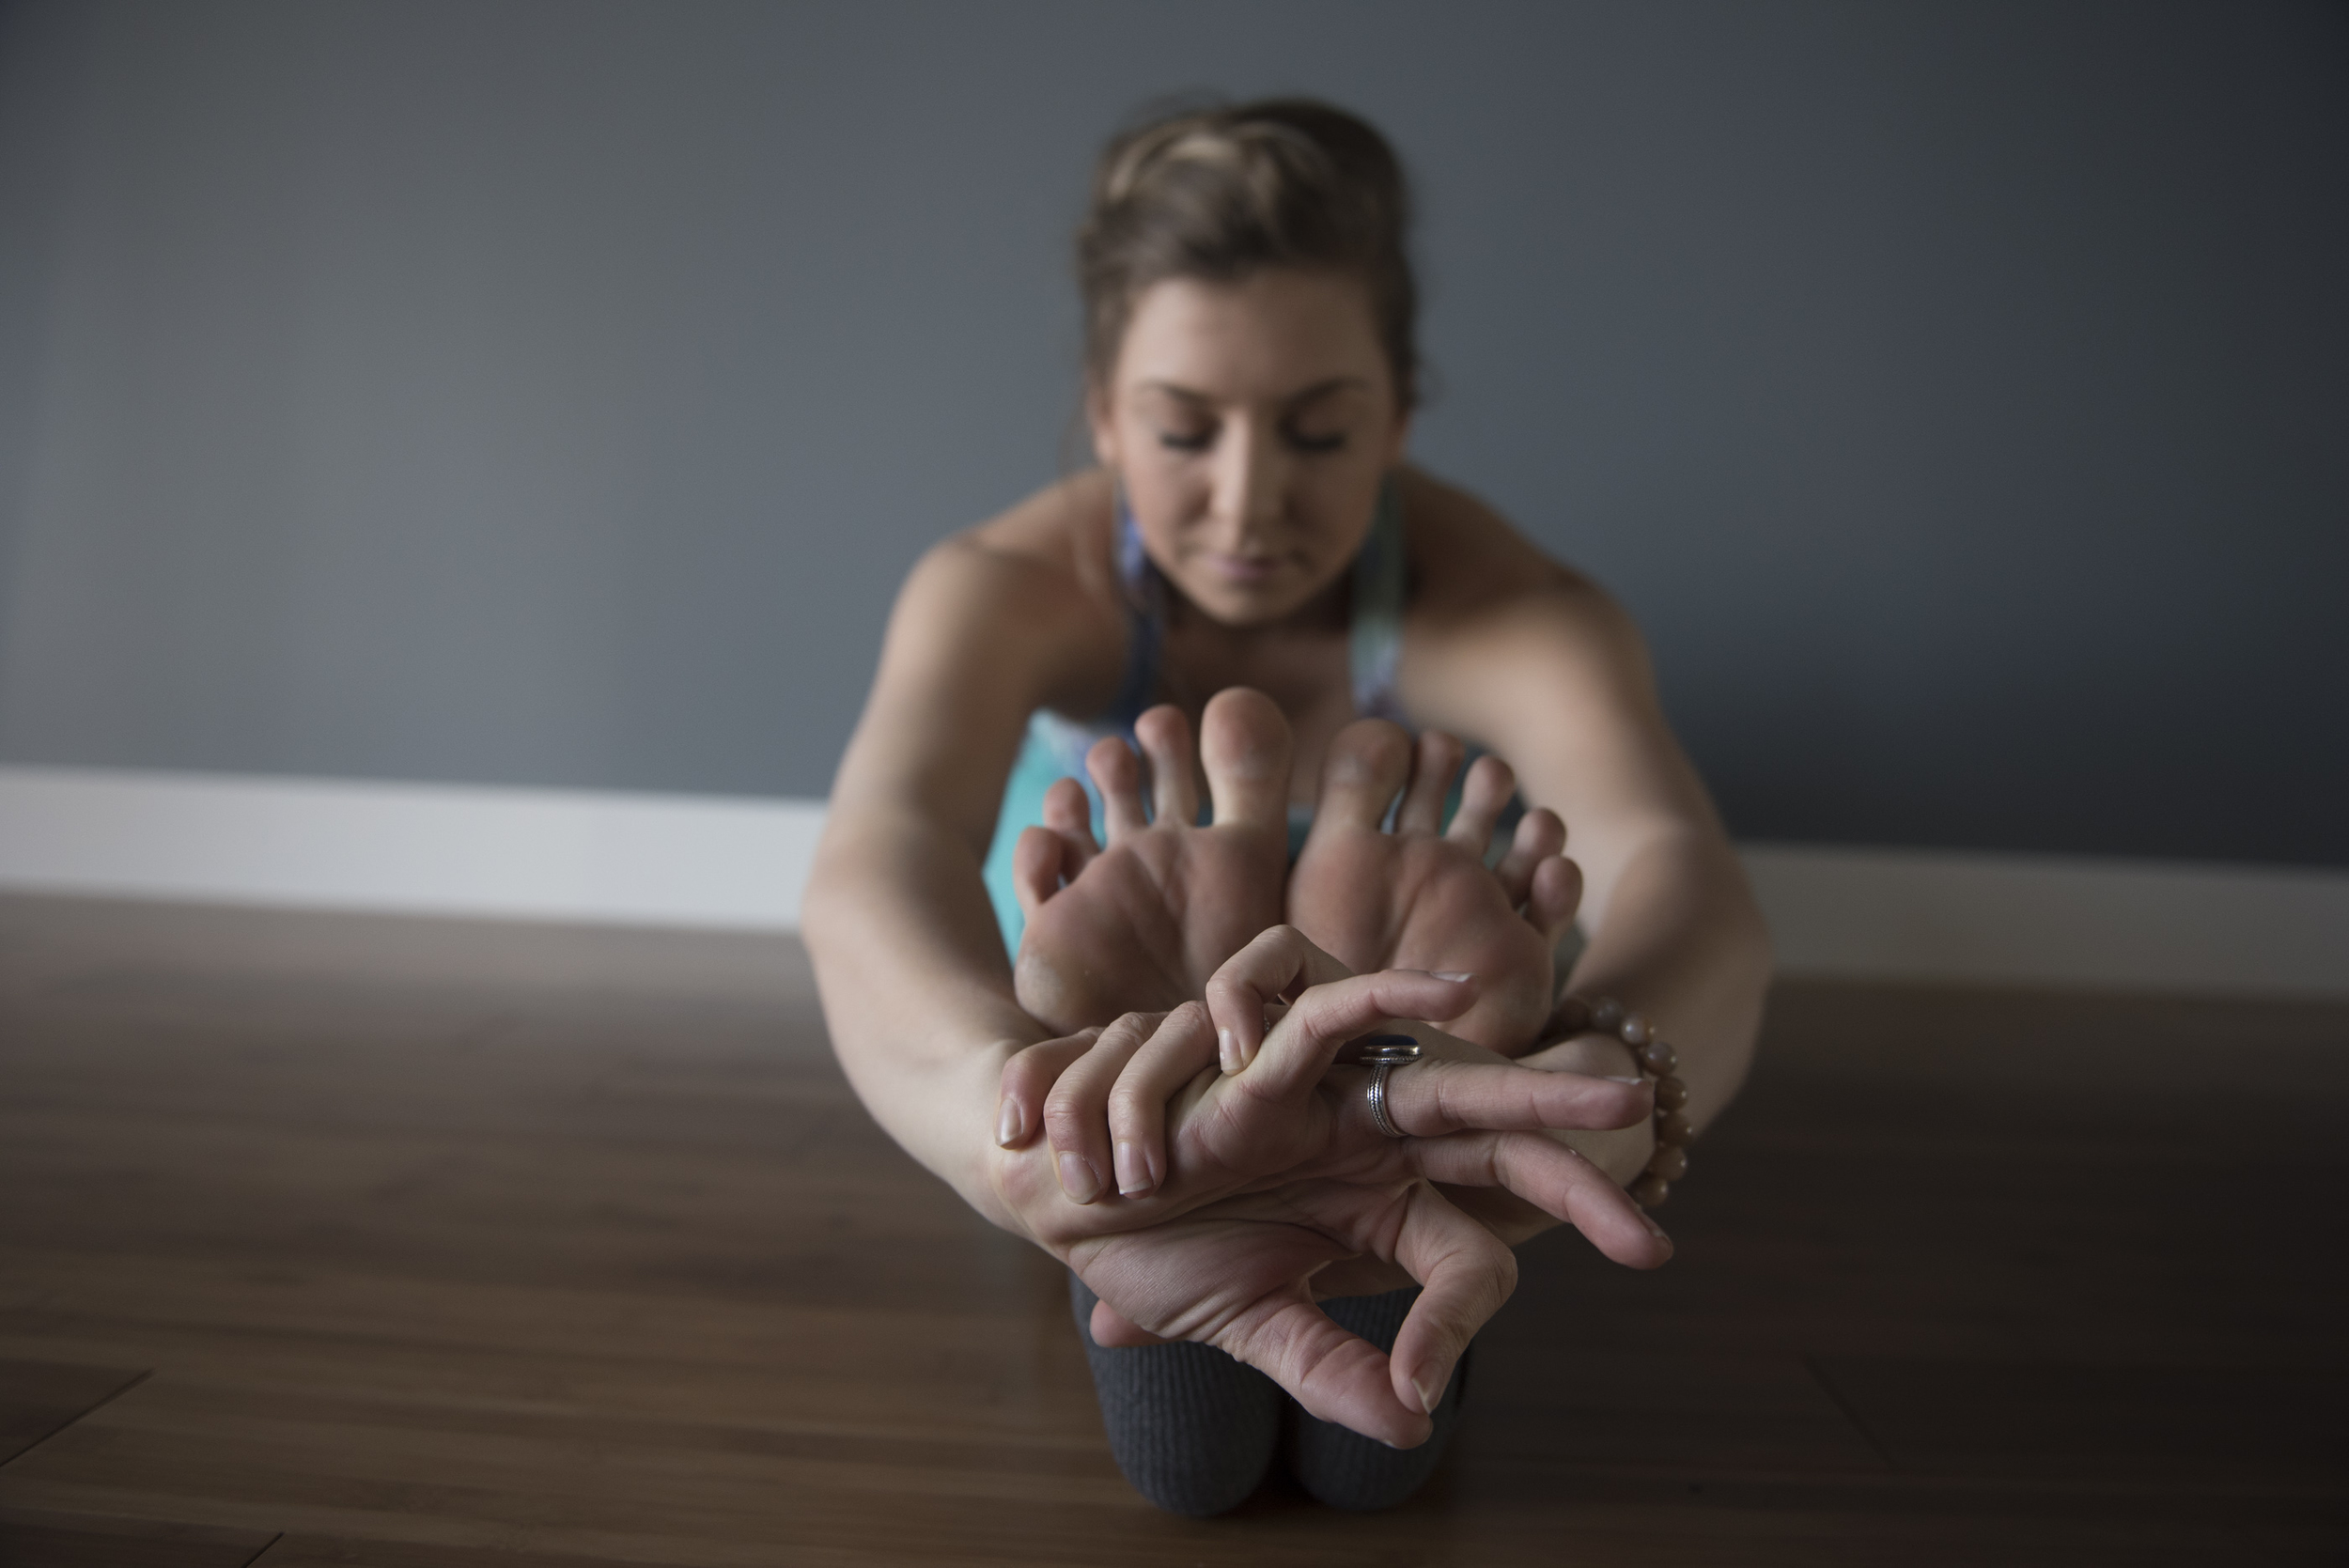 Ashley Cottrell, co-owner of the soon to be opened Evolution Yoga, demonstrates yoga poses in the studio at 1225 W. Warm Springs Rd. in Henderson Monday, Feb. 1, 2016. Jason Ogulnik/Las Vegas Review-Journal